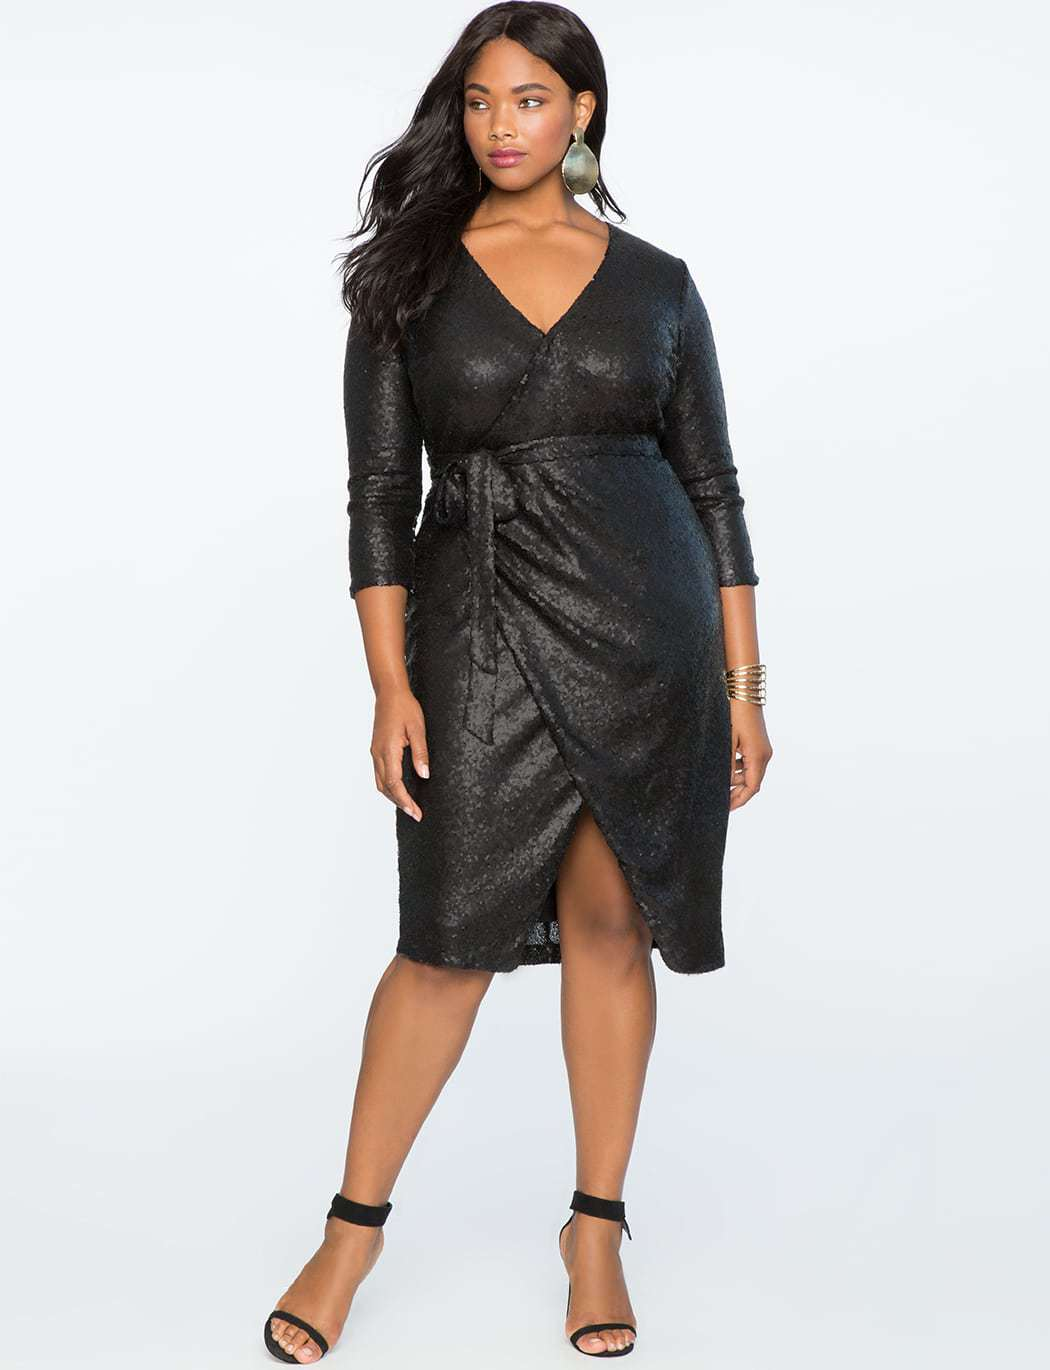 Black sequined plus size wrap dress from ELOQUII